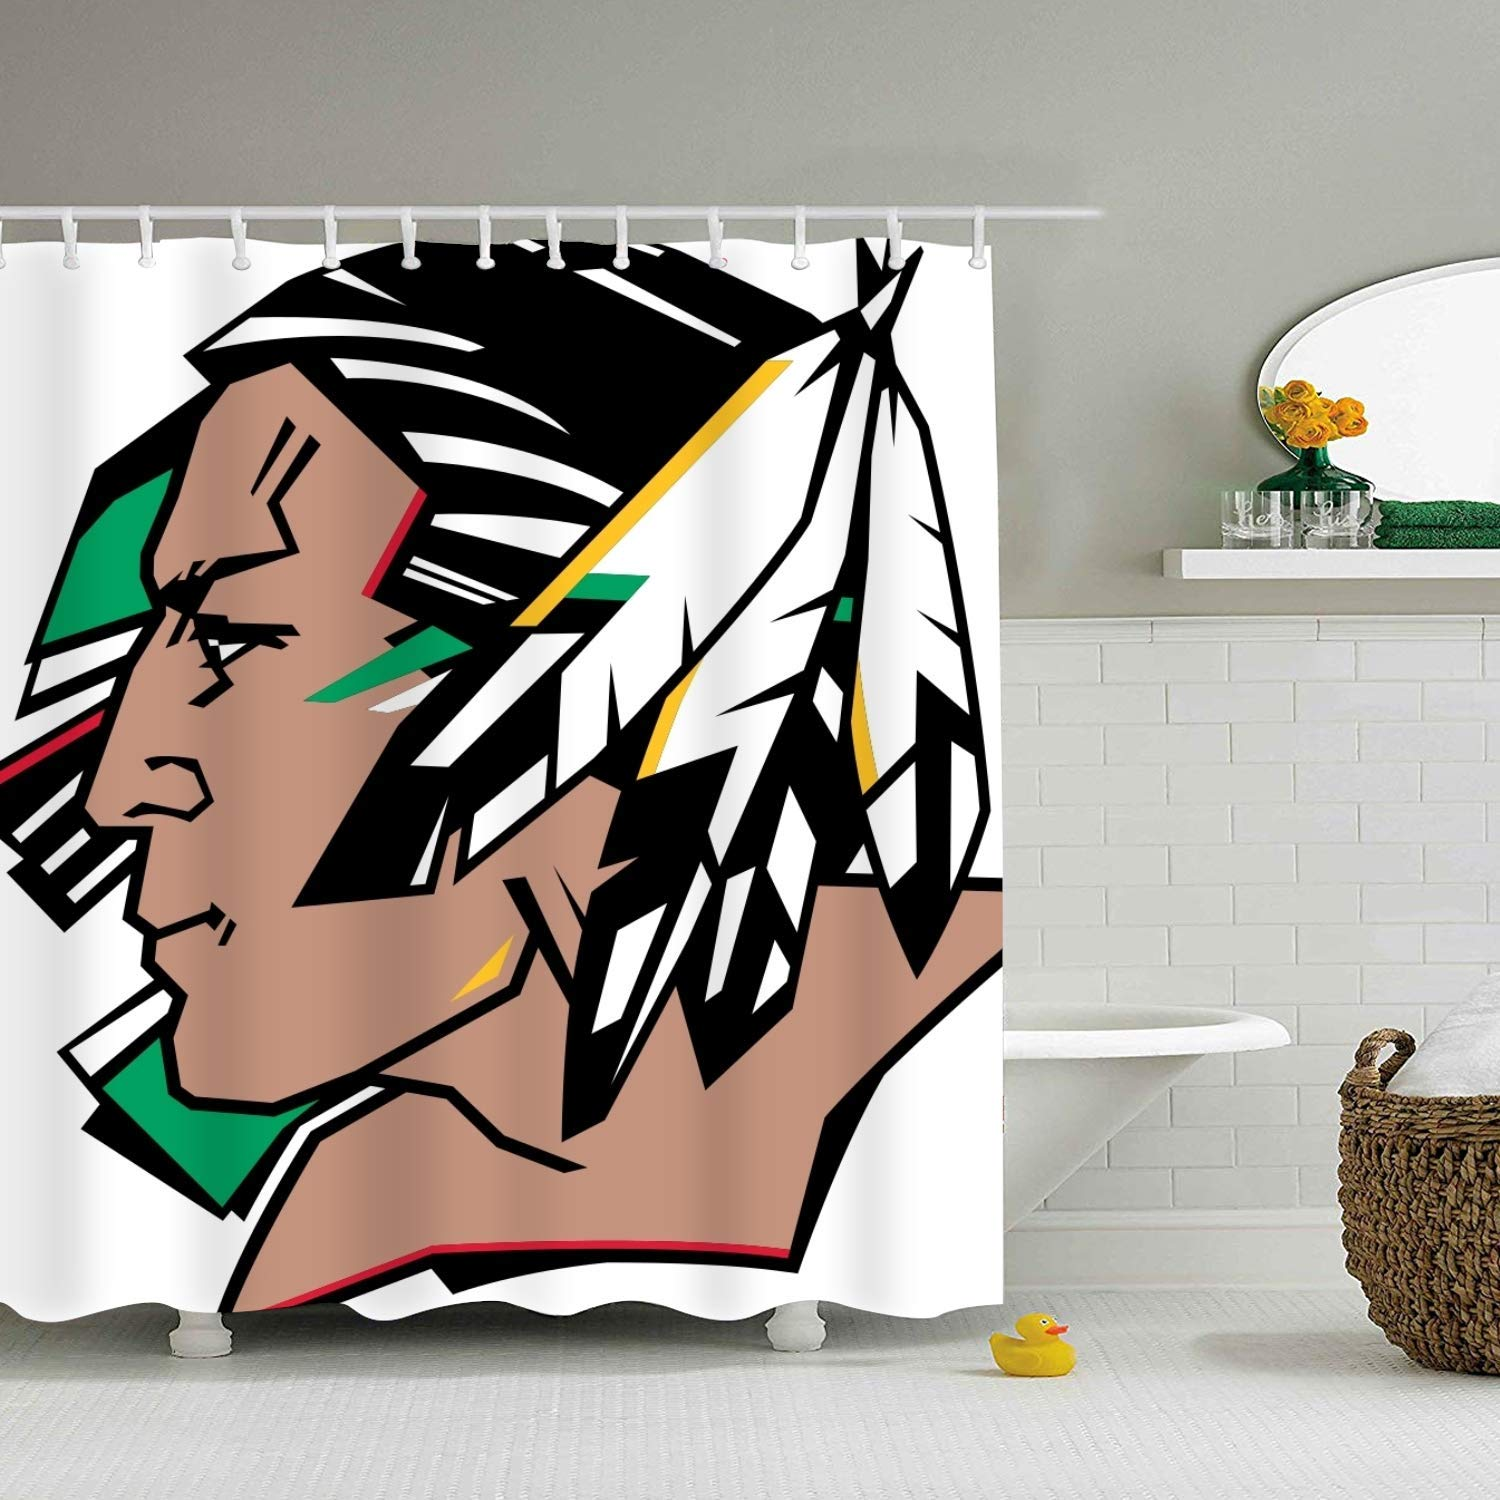 shunshunfeng North Dakota Fighting Sioux Shower Curtain, Extra Long Bath Decorations Bathroom Decor Sets with Hooks Marriage Gifts for Men and Women in Art Print Polyester Fabric 65 x 72